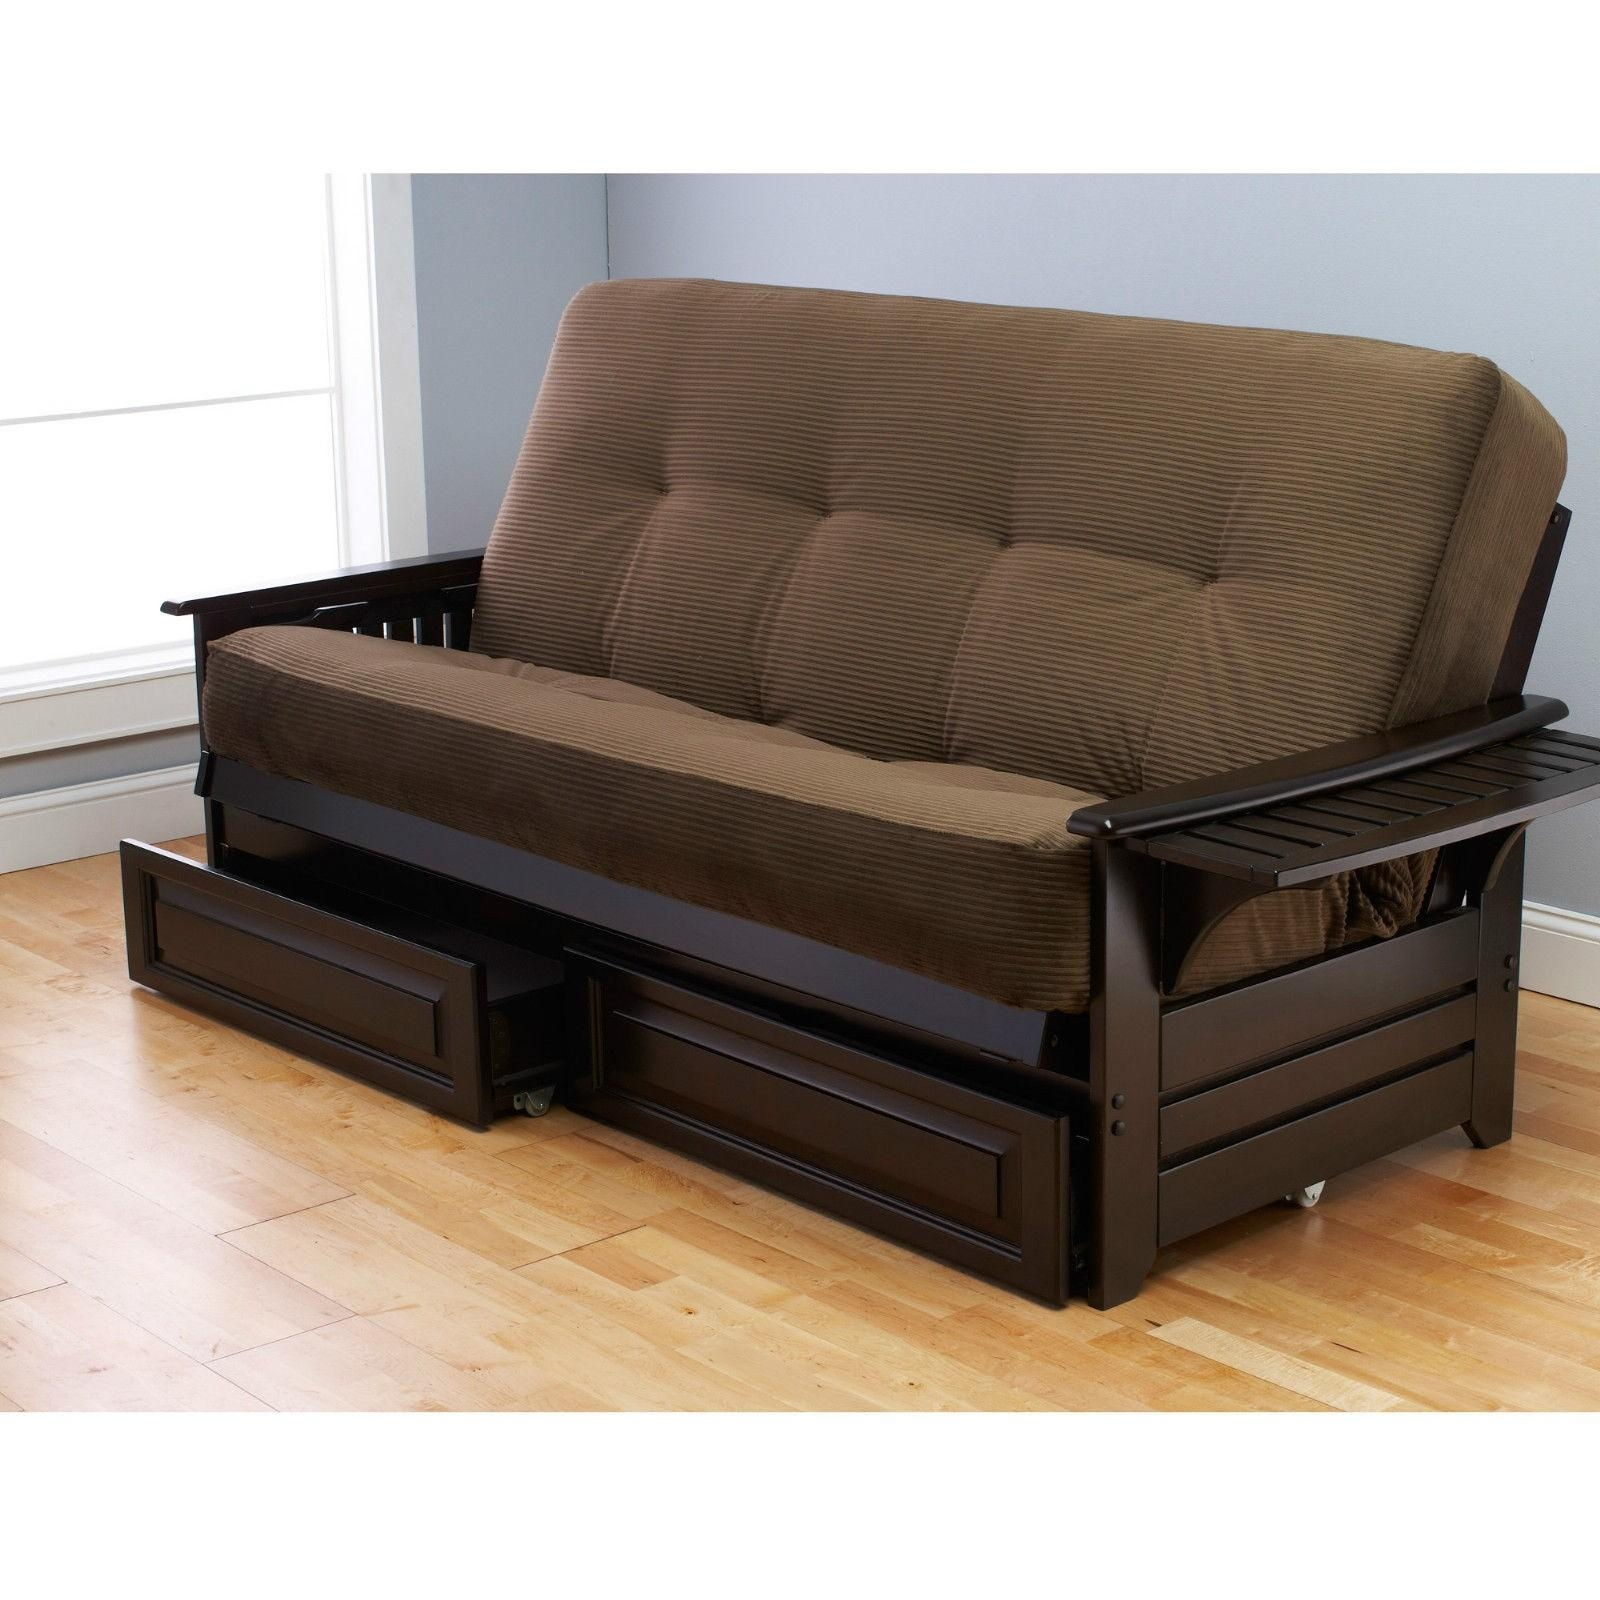 Sofas Center : Stunning Sofa King Size Pictures Inspirations Futon Pertaining To King Size Sofa Beds (Image 17 of 20)